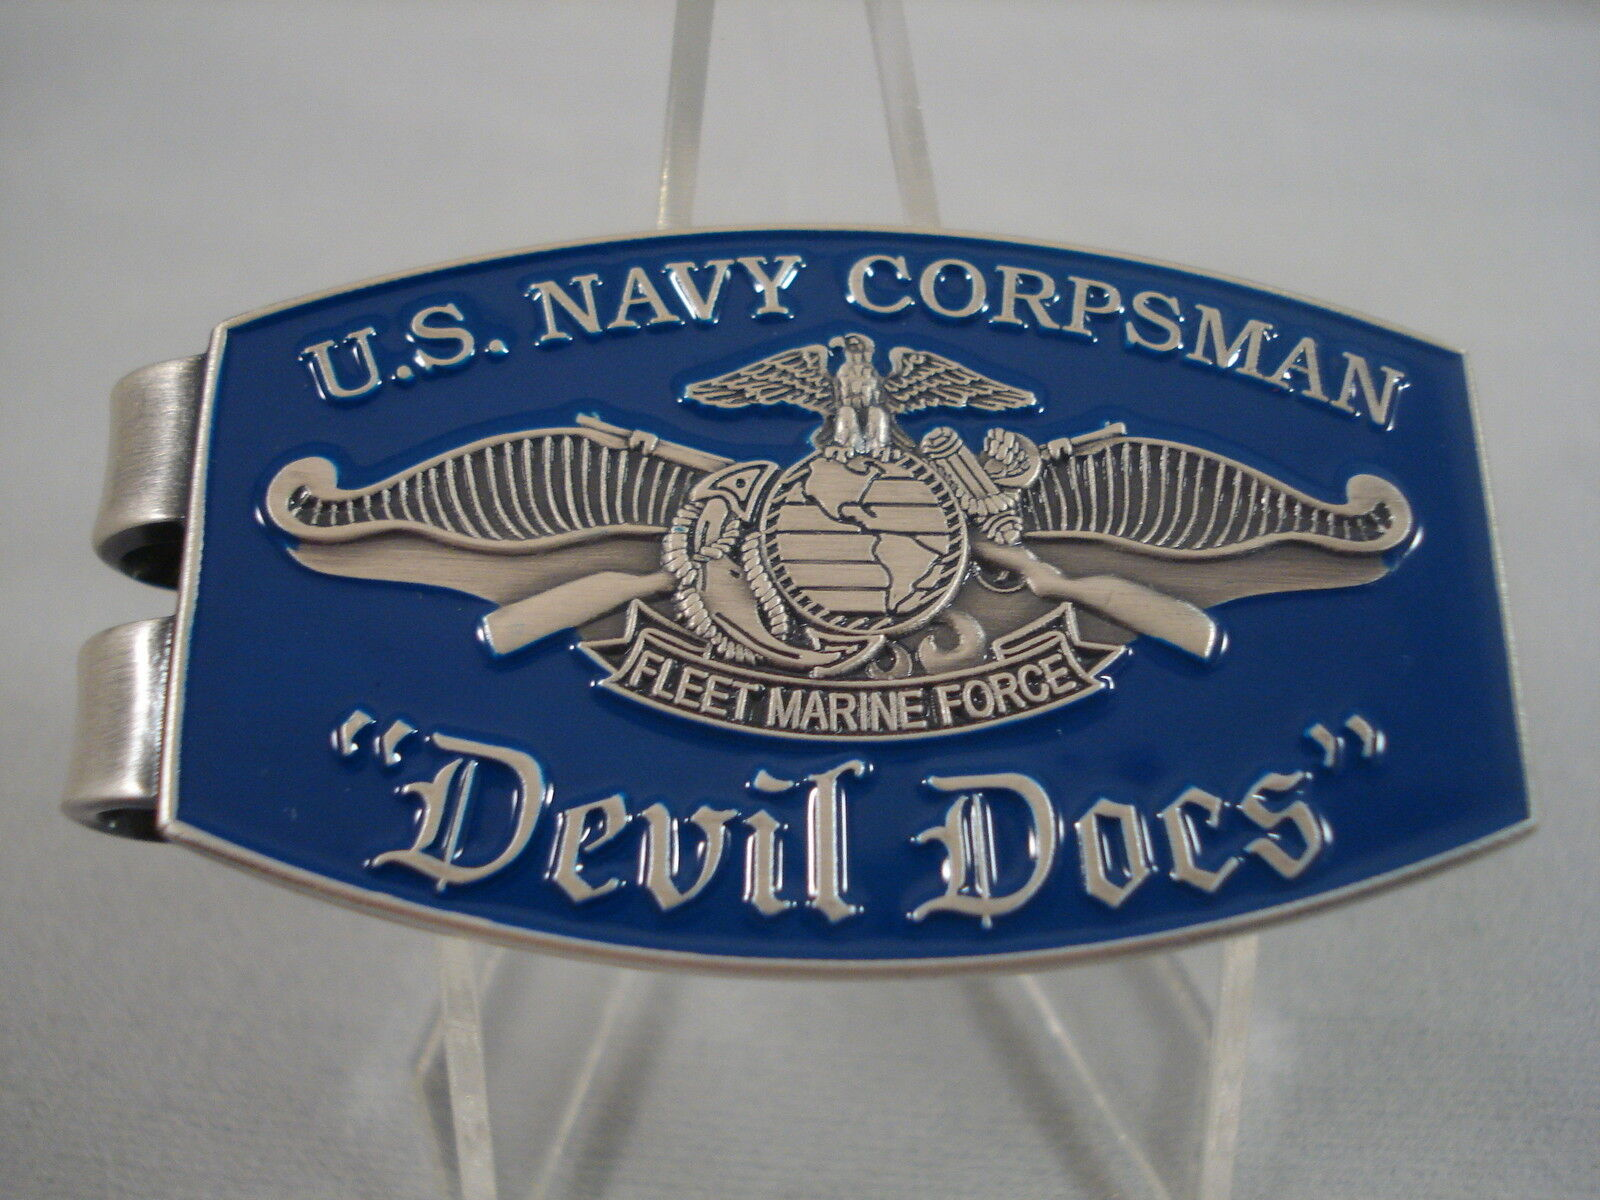 Us navy corpsman devil doc doctor money clip usn challenge coin picture 1 of 2 biocorpaavc Gallery